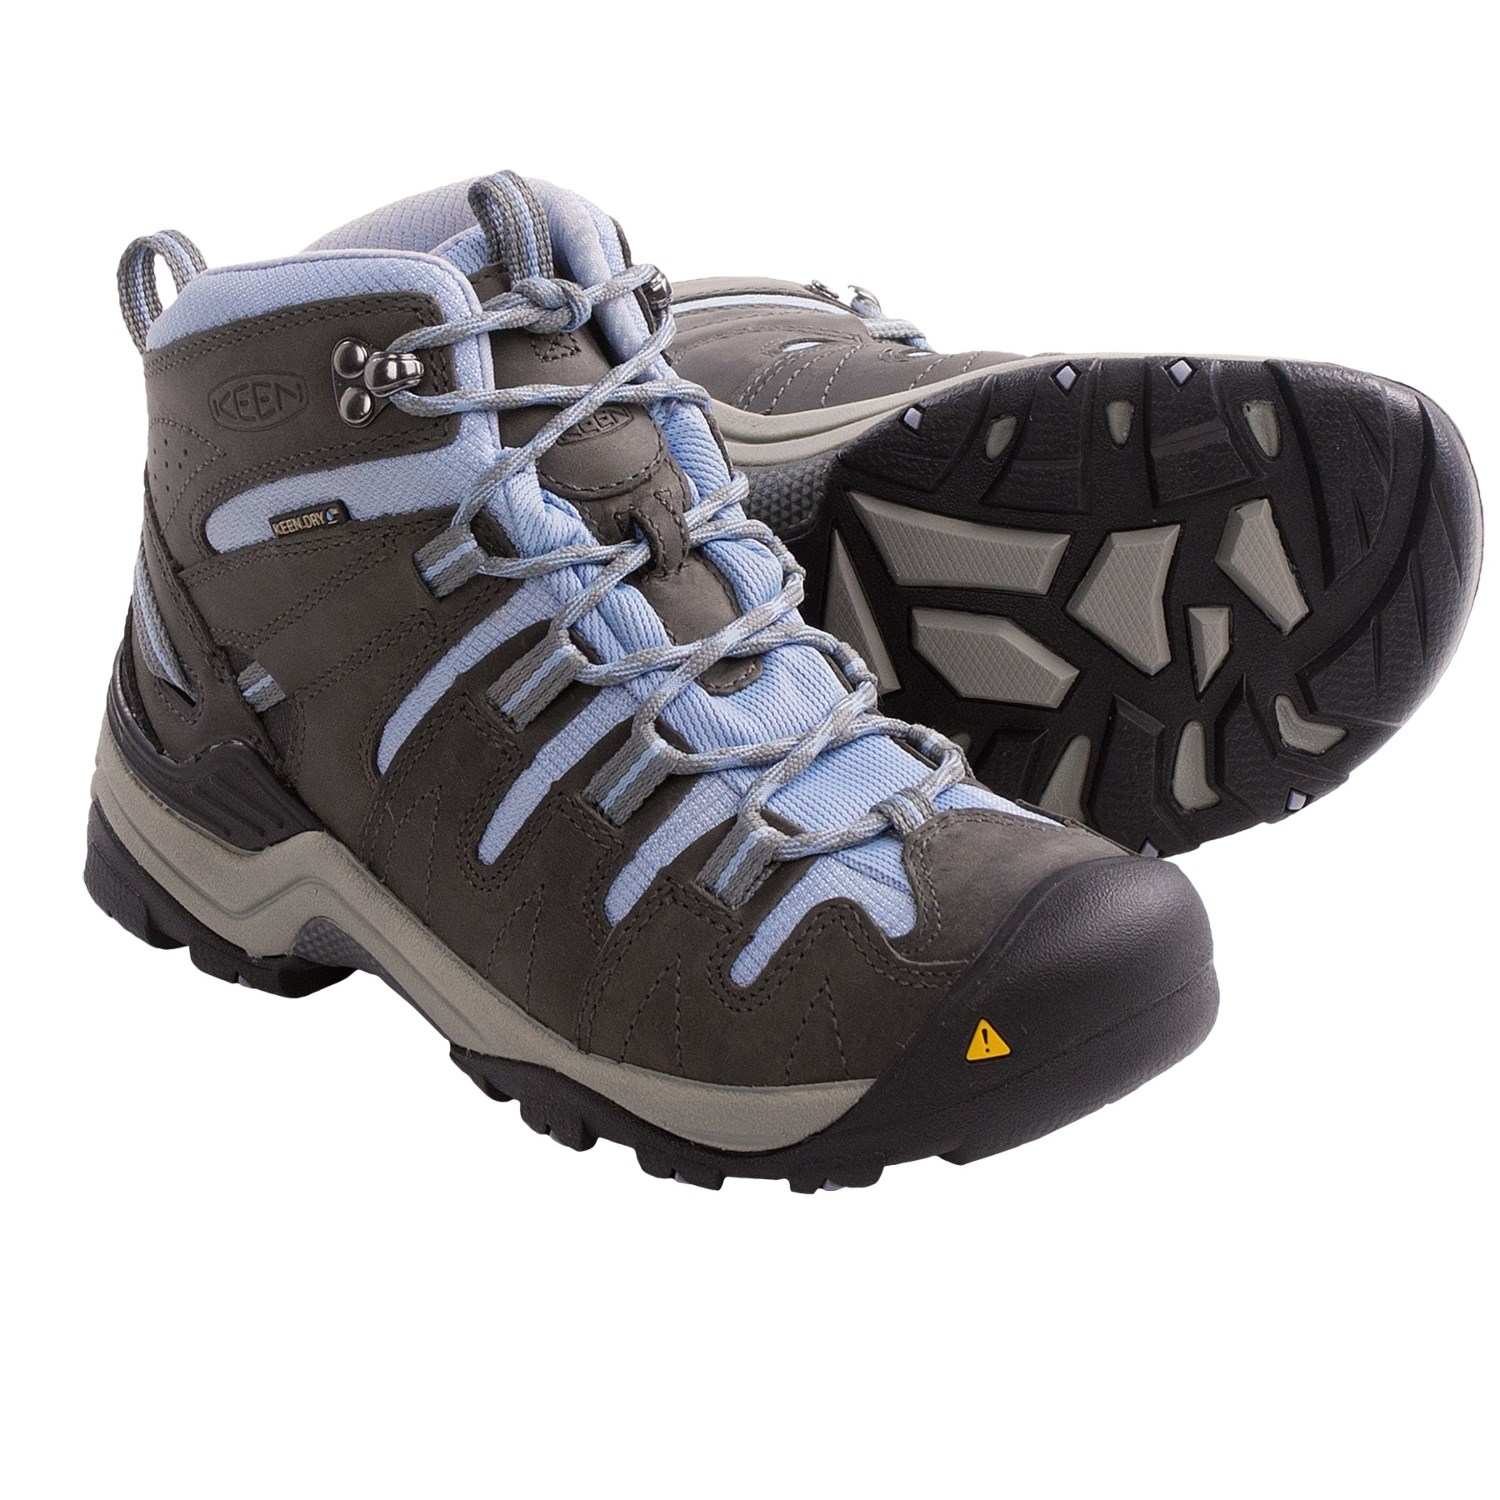 Women's Hiking Boots on Pinterest | Women's Hiking Boots, Hiking